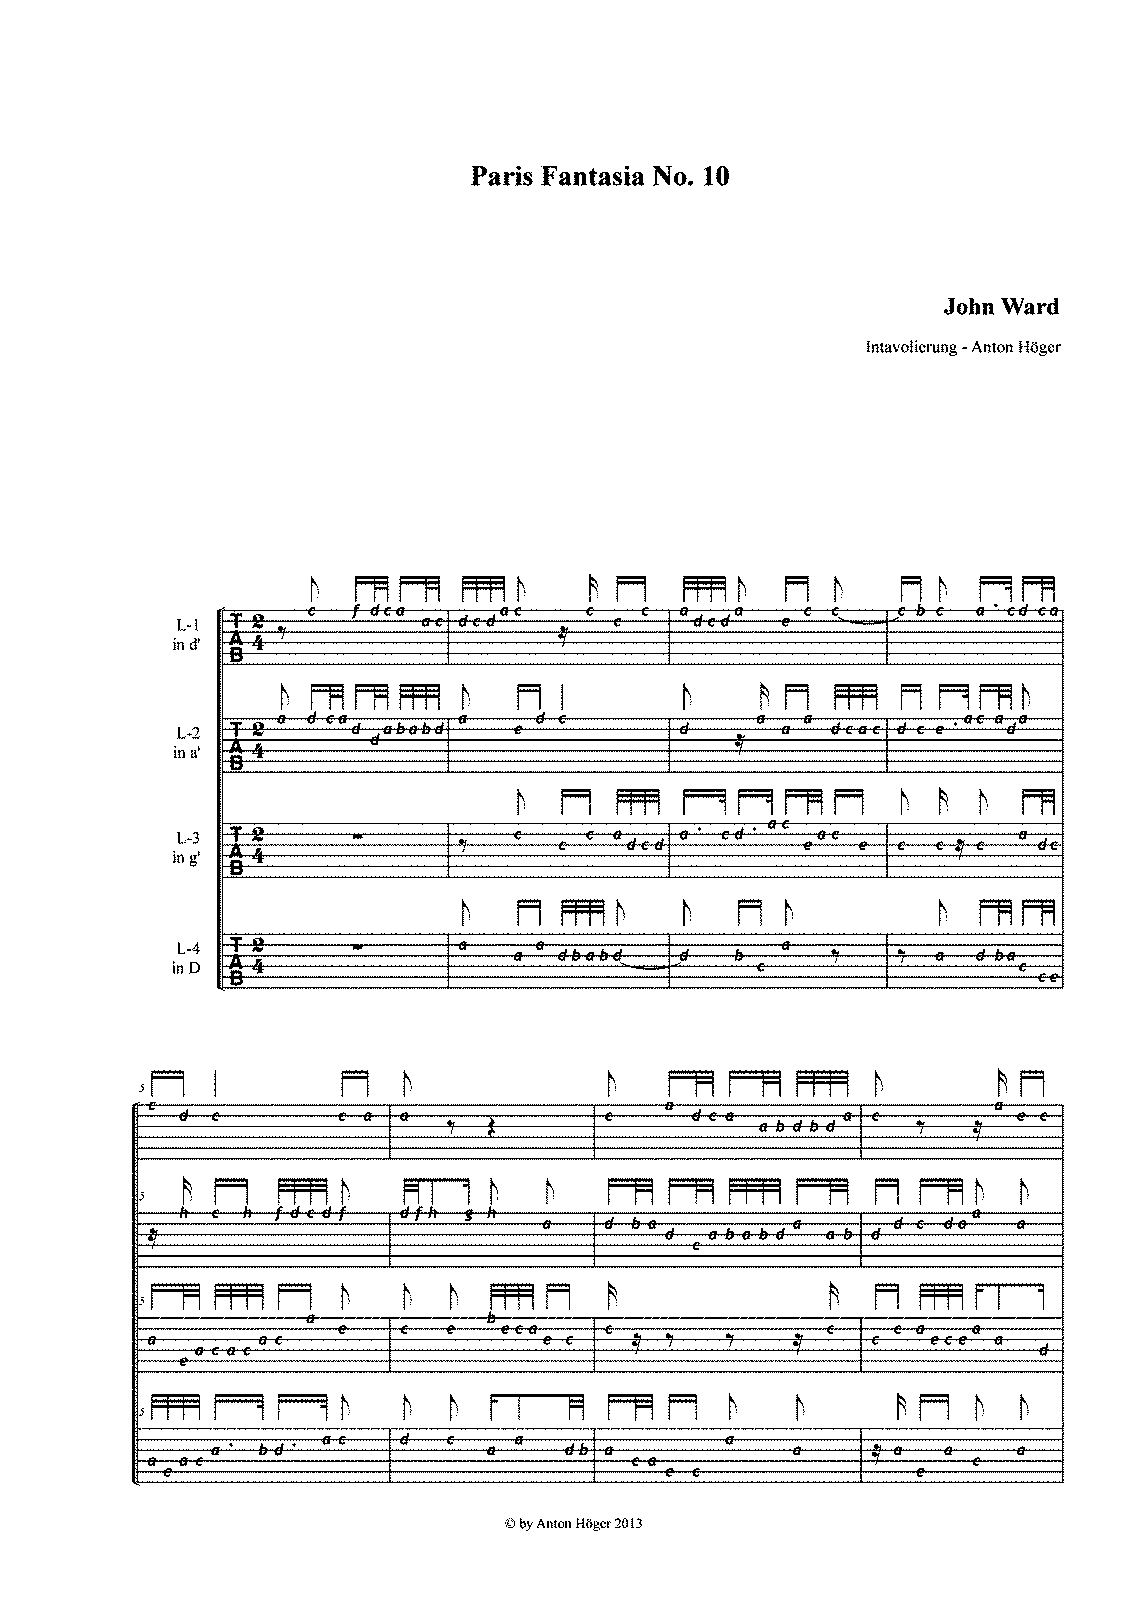 PMLP257086-Ward, John - Paris Fantasia No.910 (Fin.Tab).pdf